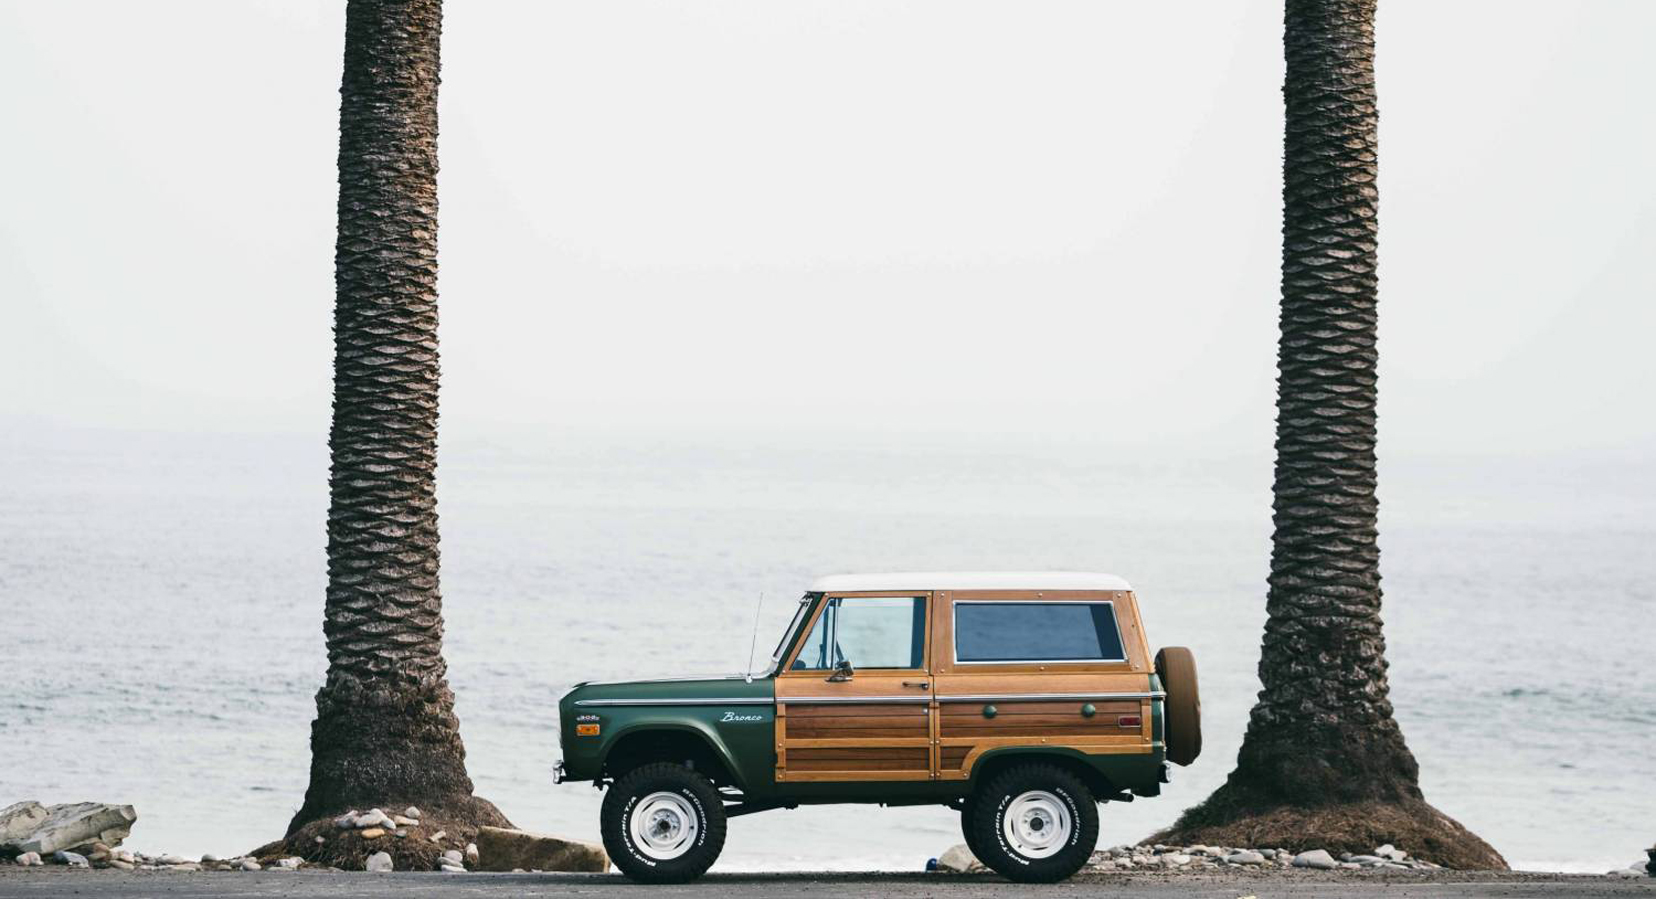 1974 'Woody' Ford Bronco